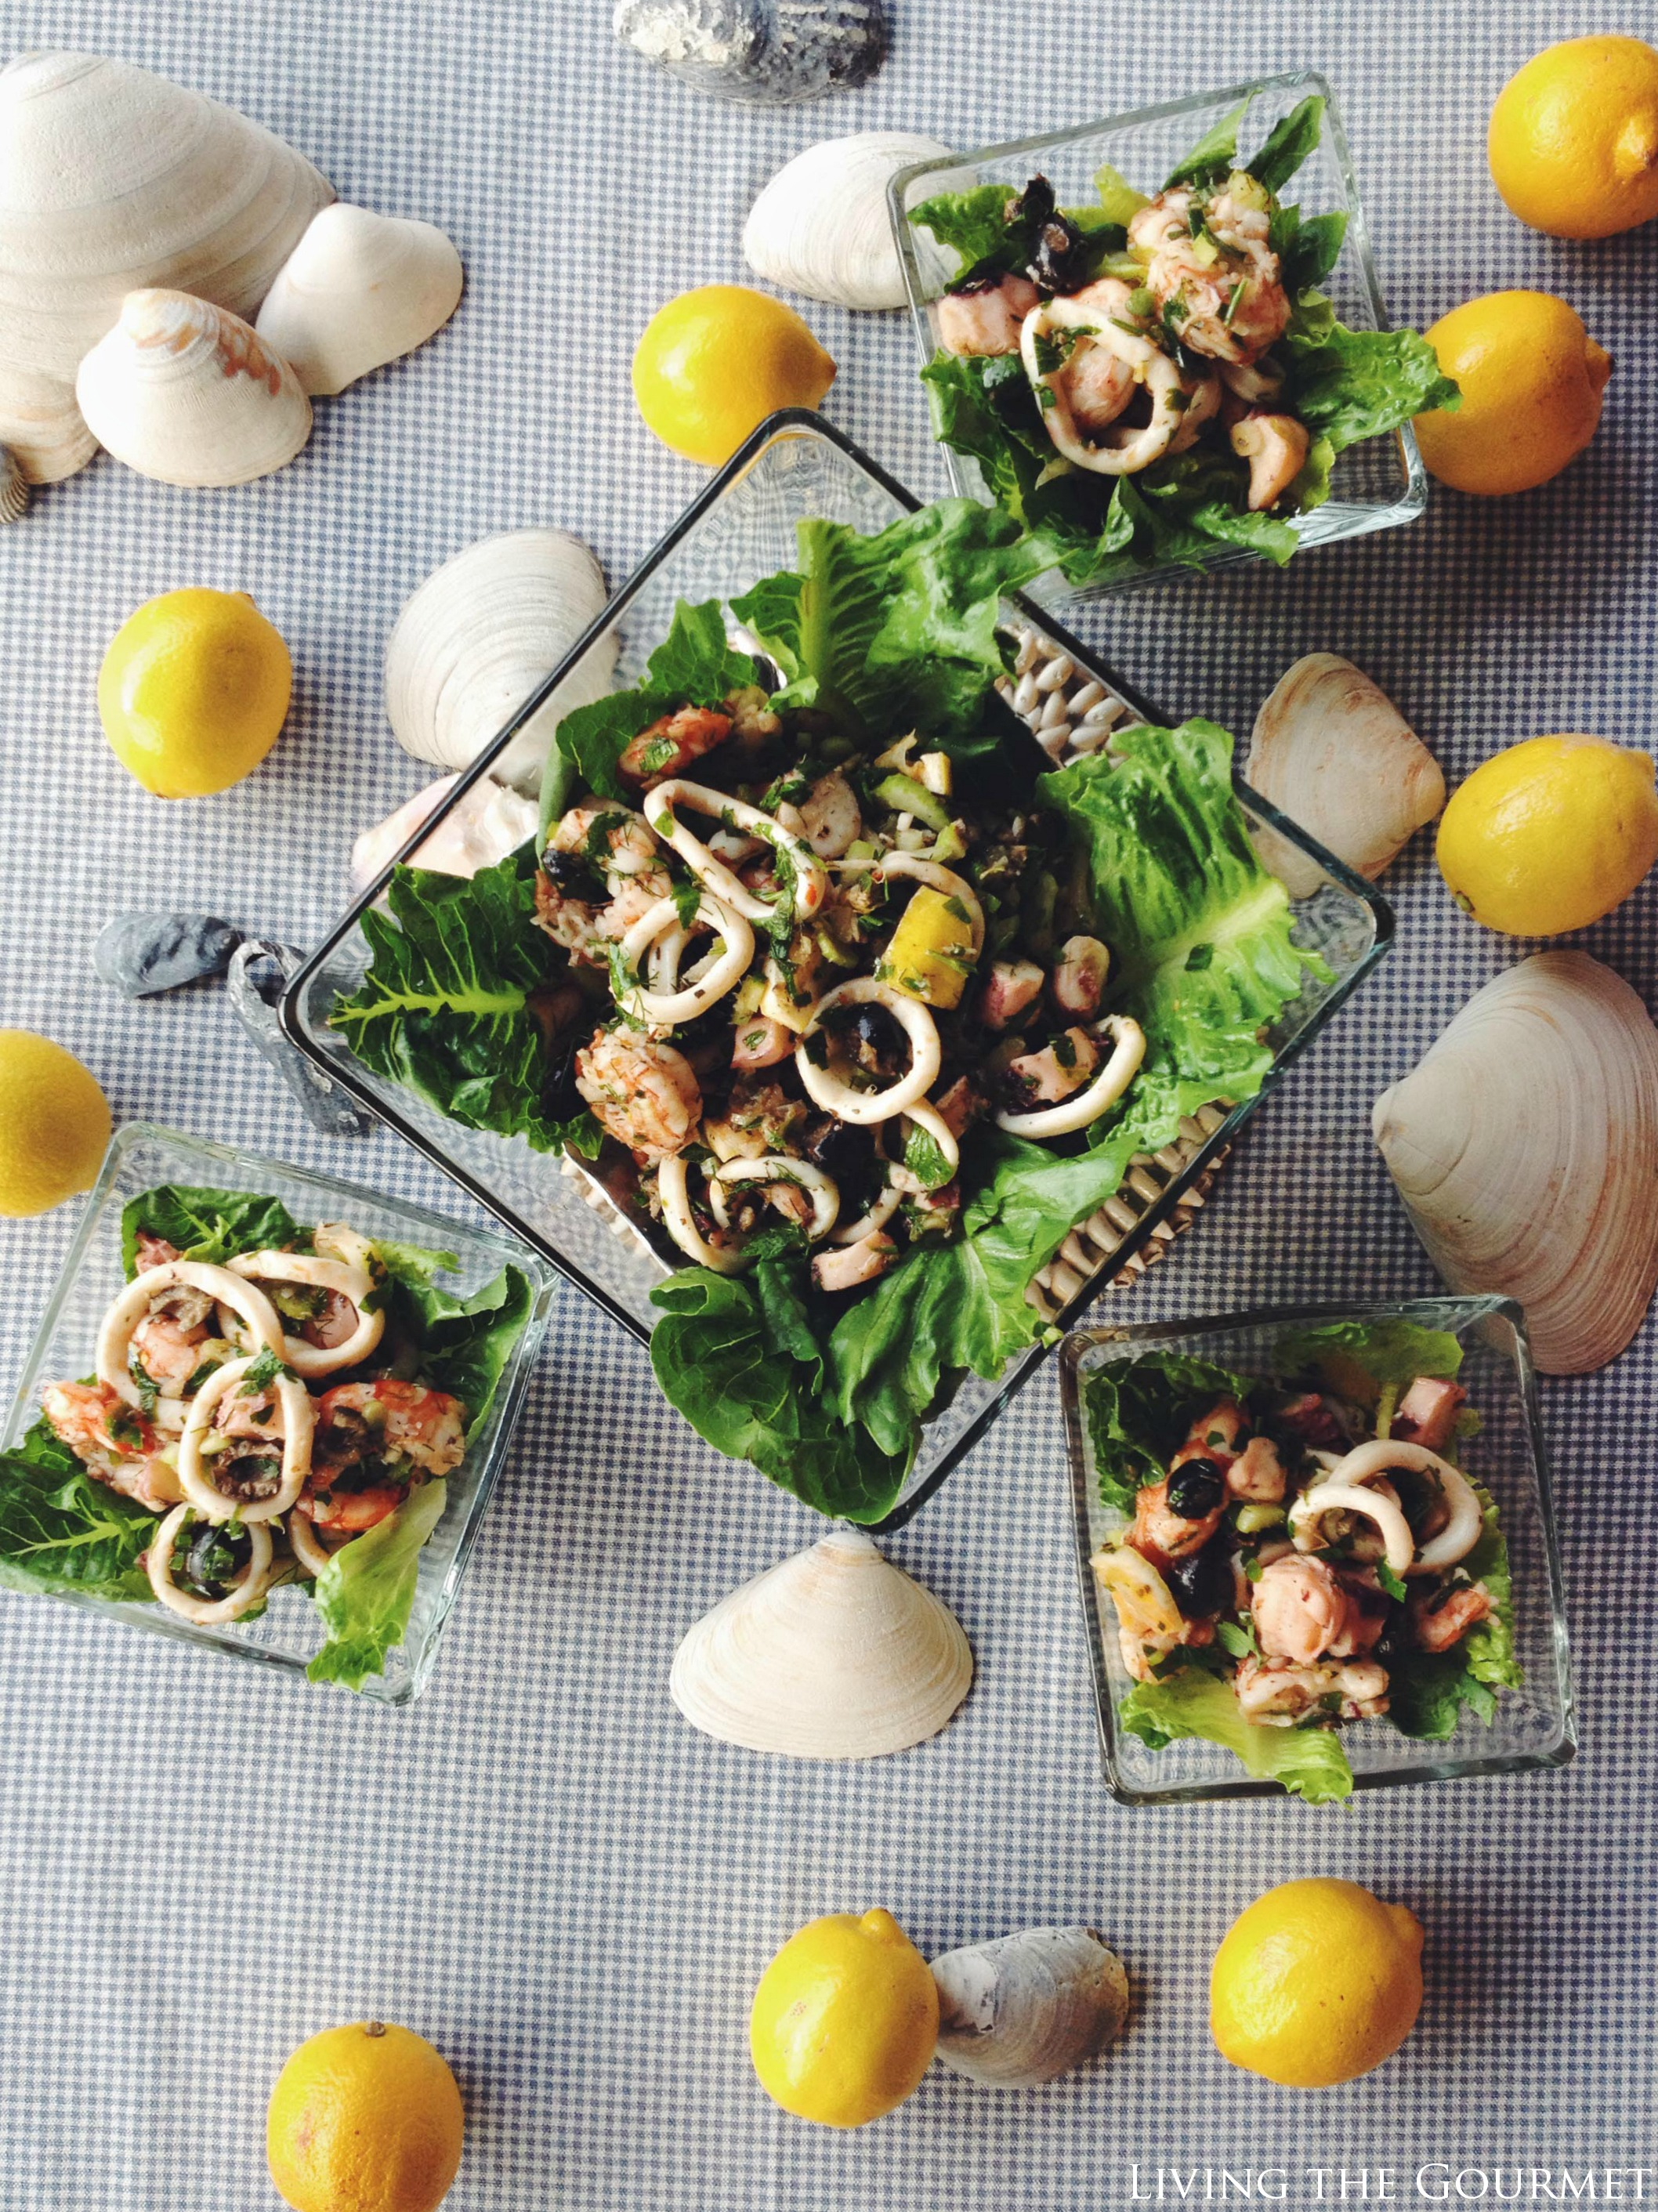 Living the Gourmet: Calamari and Shrimp Salad #AD